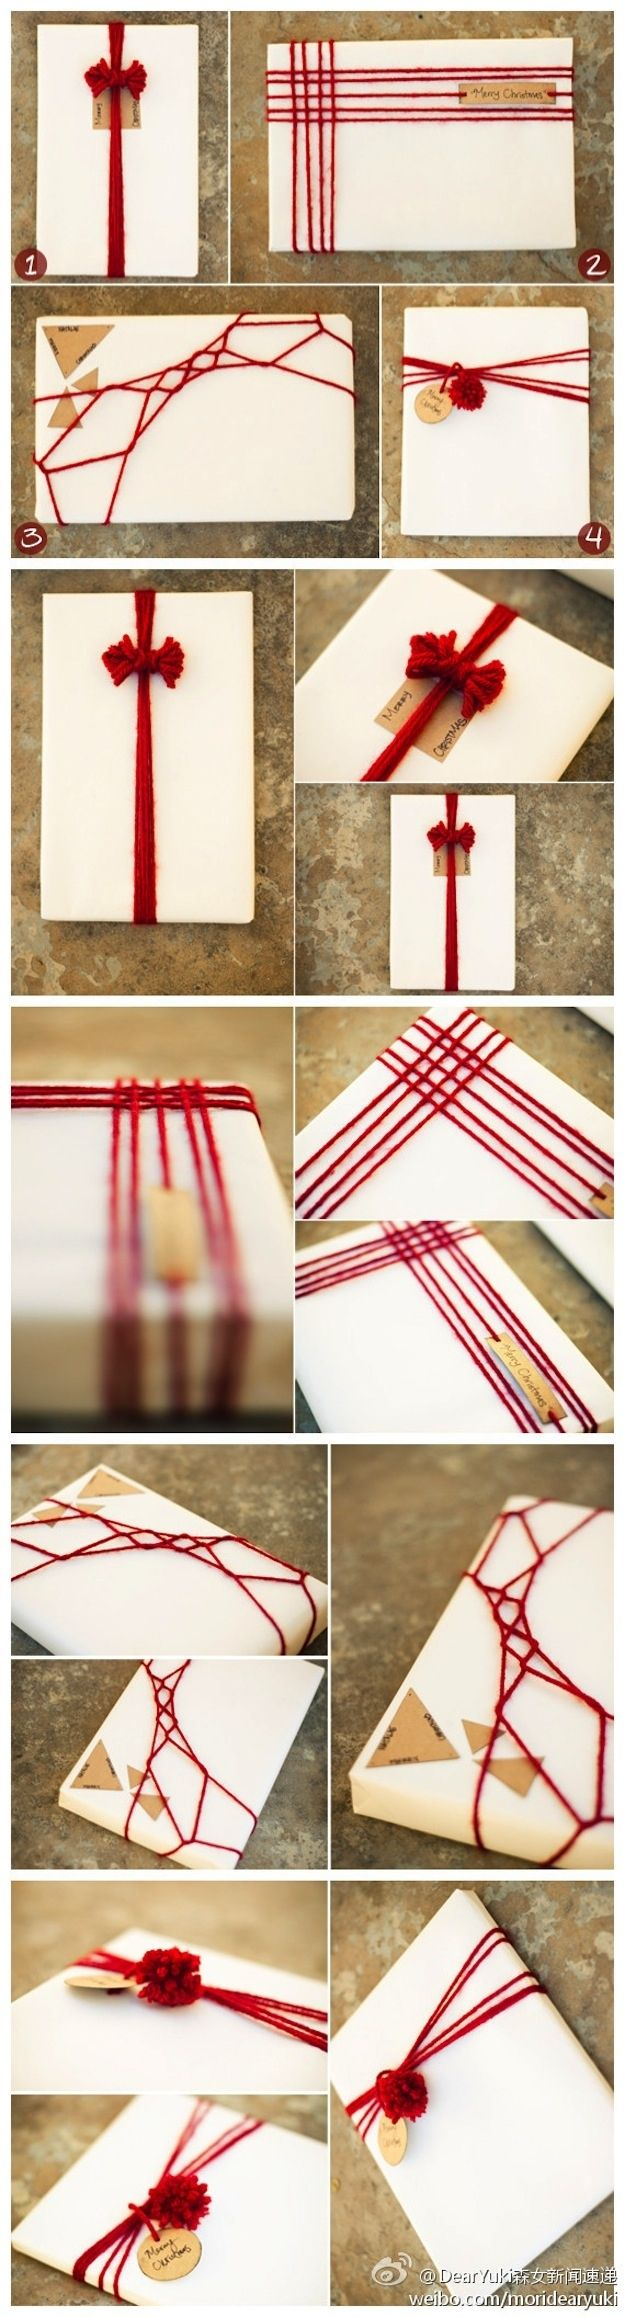 Nov 30,  · Not to mention, it's way more fun to watch someone unwrap a real gift. With a little extra effort and a dose of creativity you can make giving cash fun again! Here are 23 clever ways to give cash as a gift for any occasion.